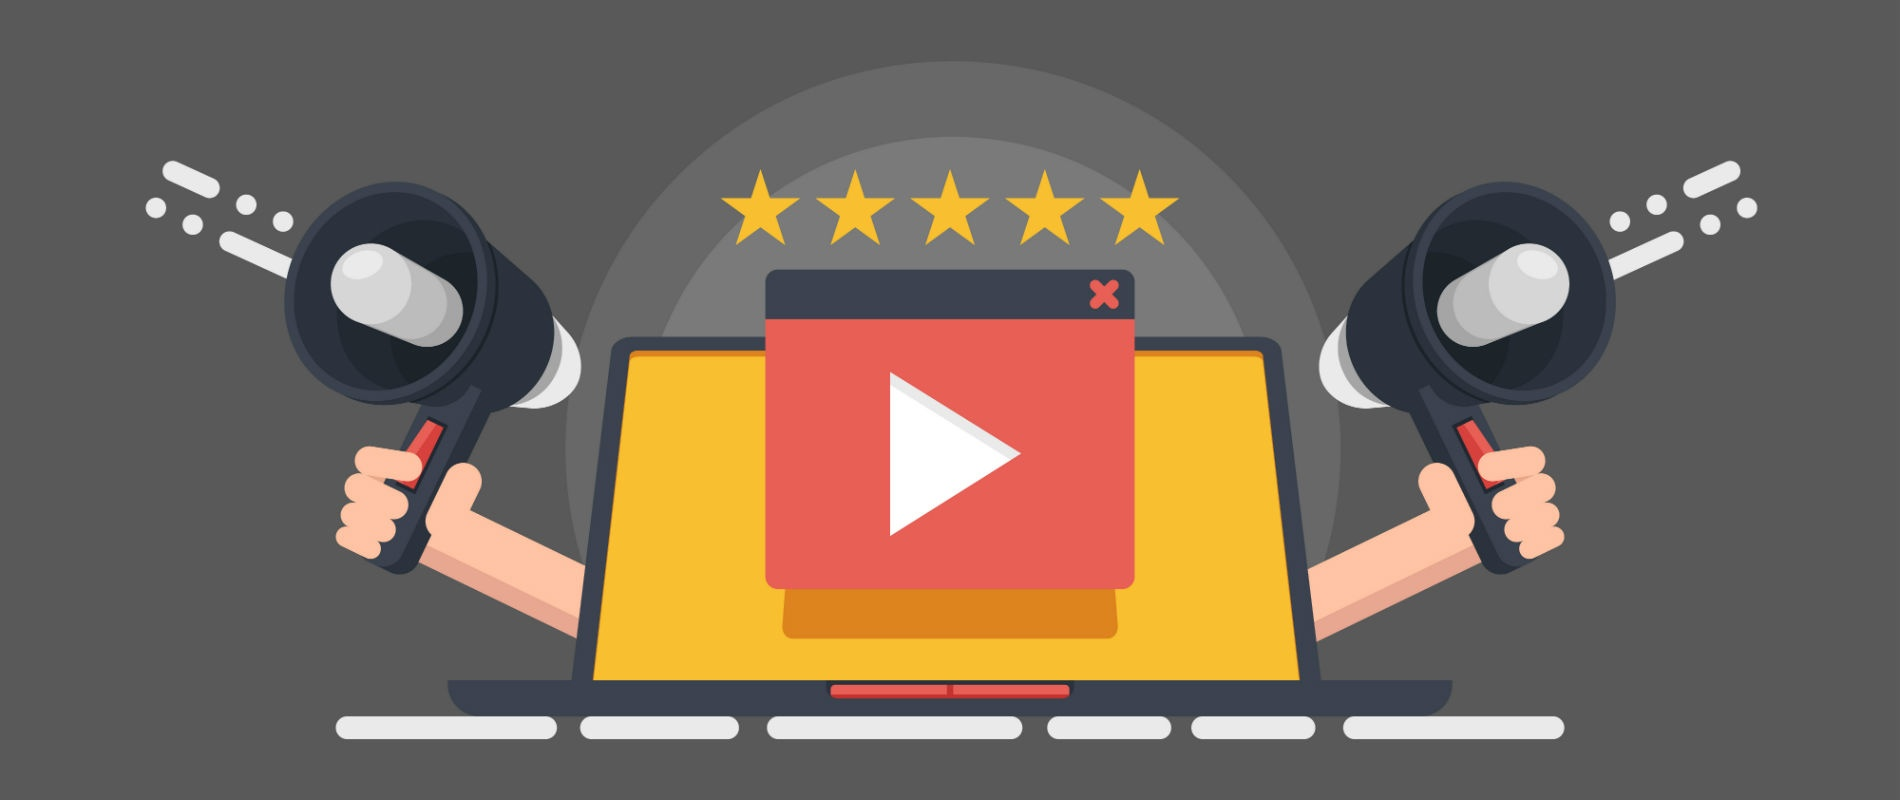 Why Video Marketing Works So Effectively